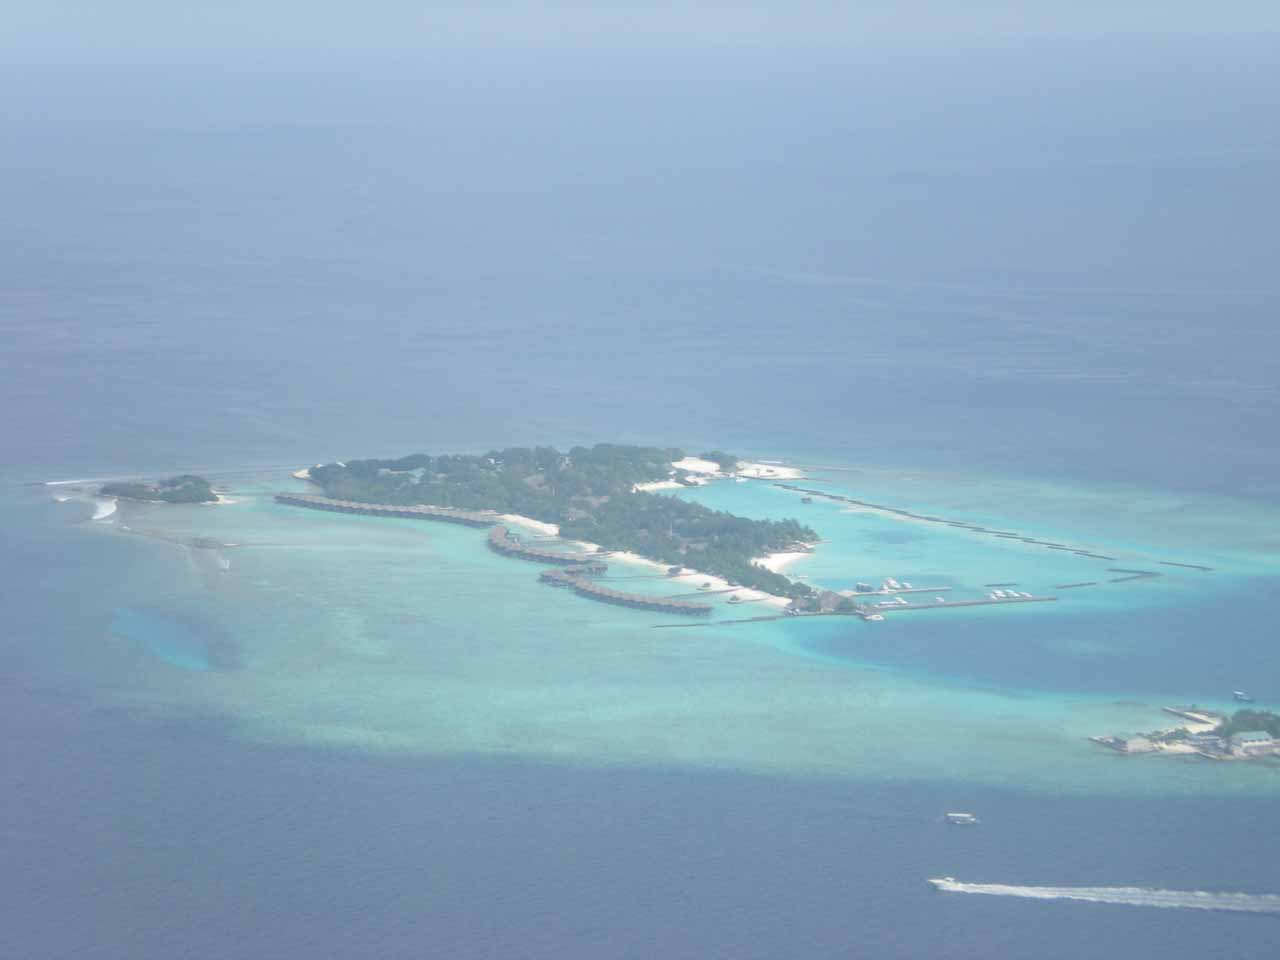 Looking out the plane towards some atoll on the way to the Maldives